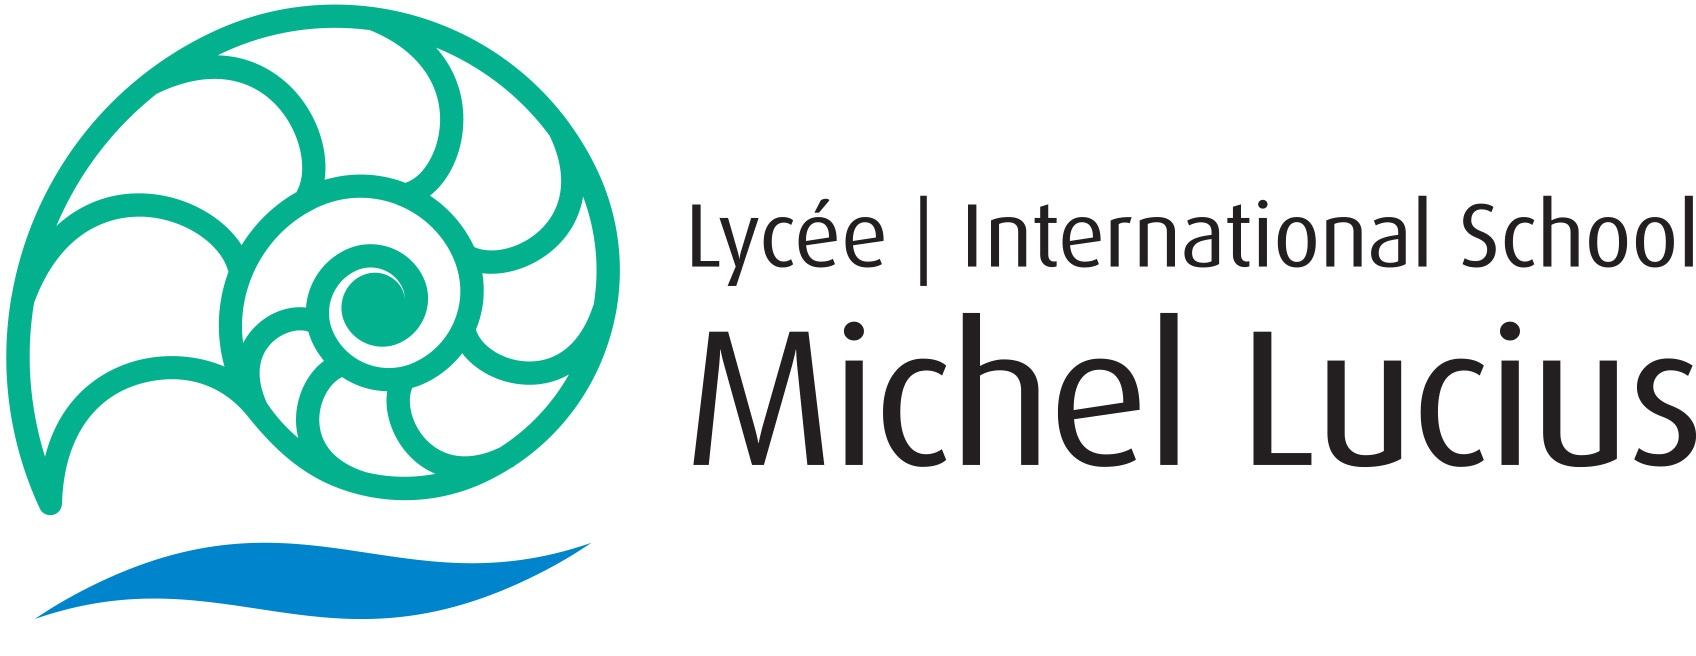 Lycée Michel Lucius - International School Michel Lucius